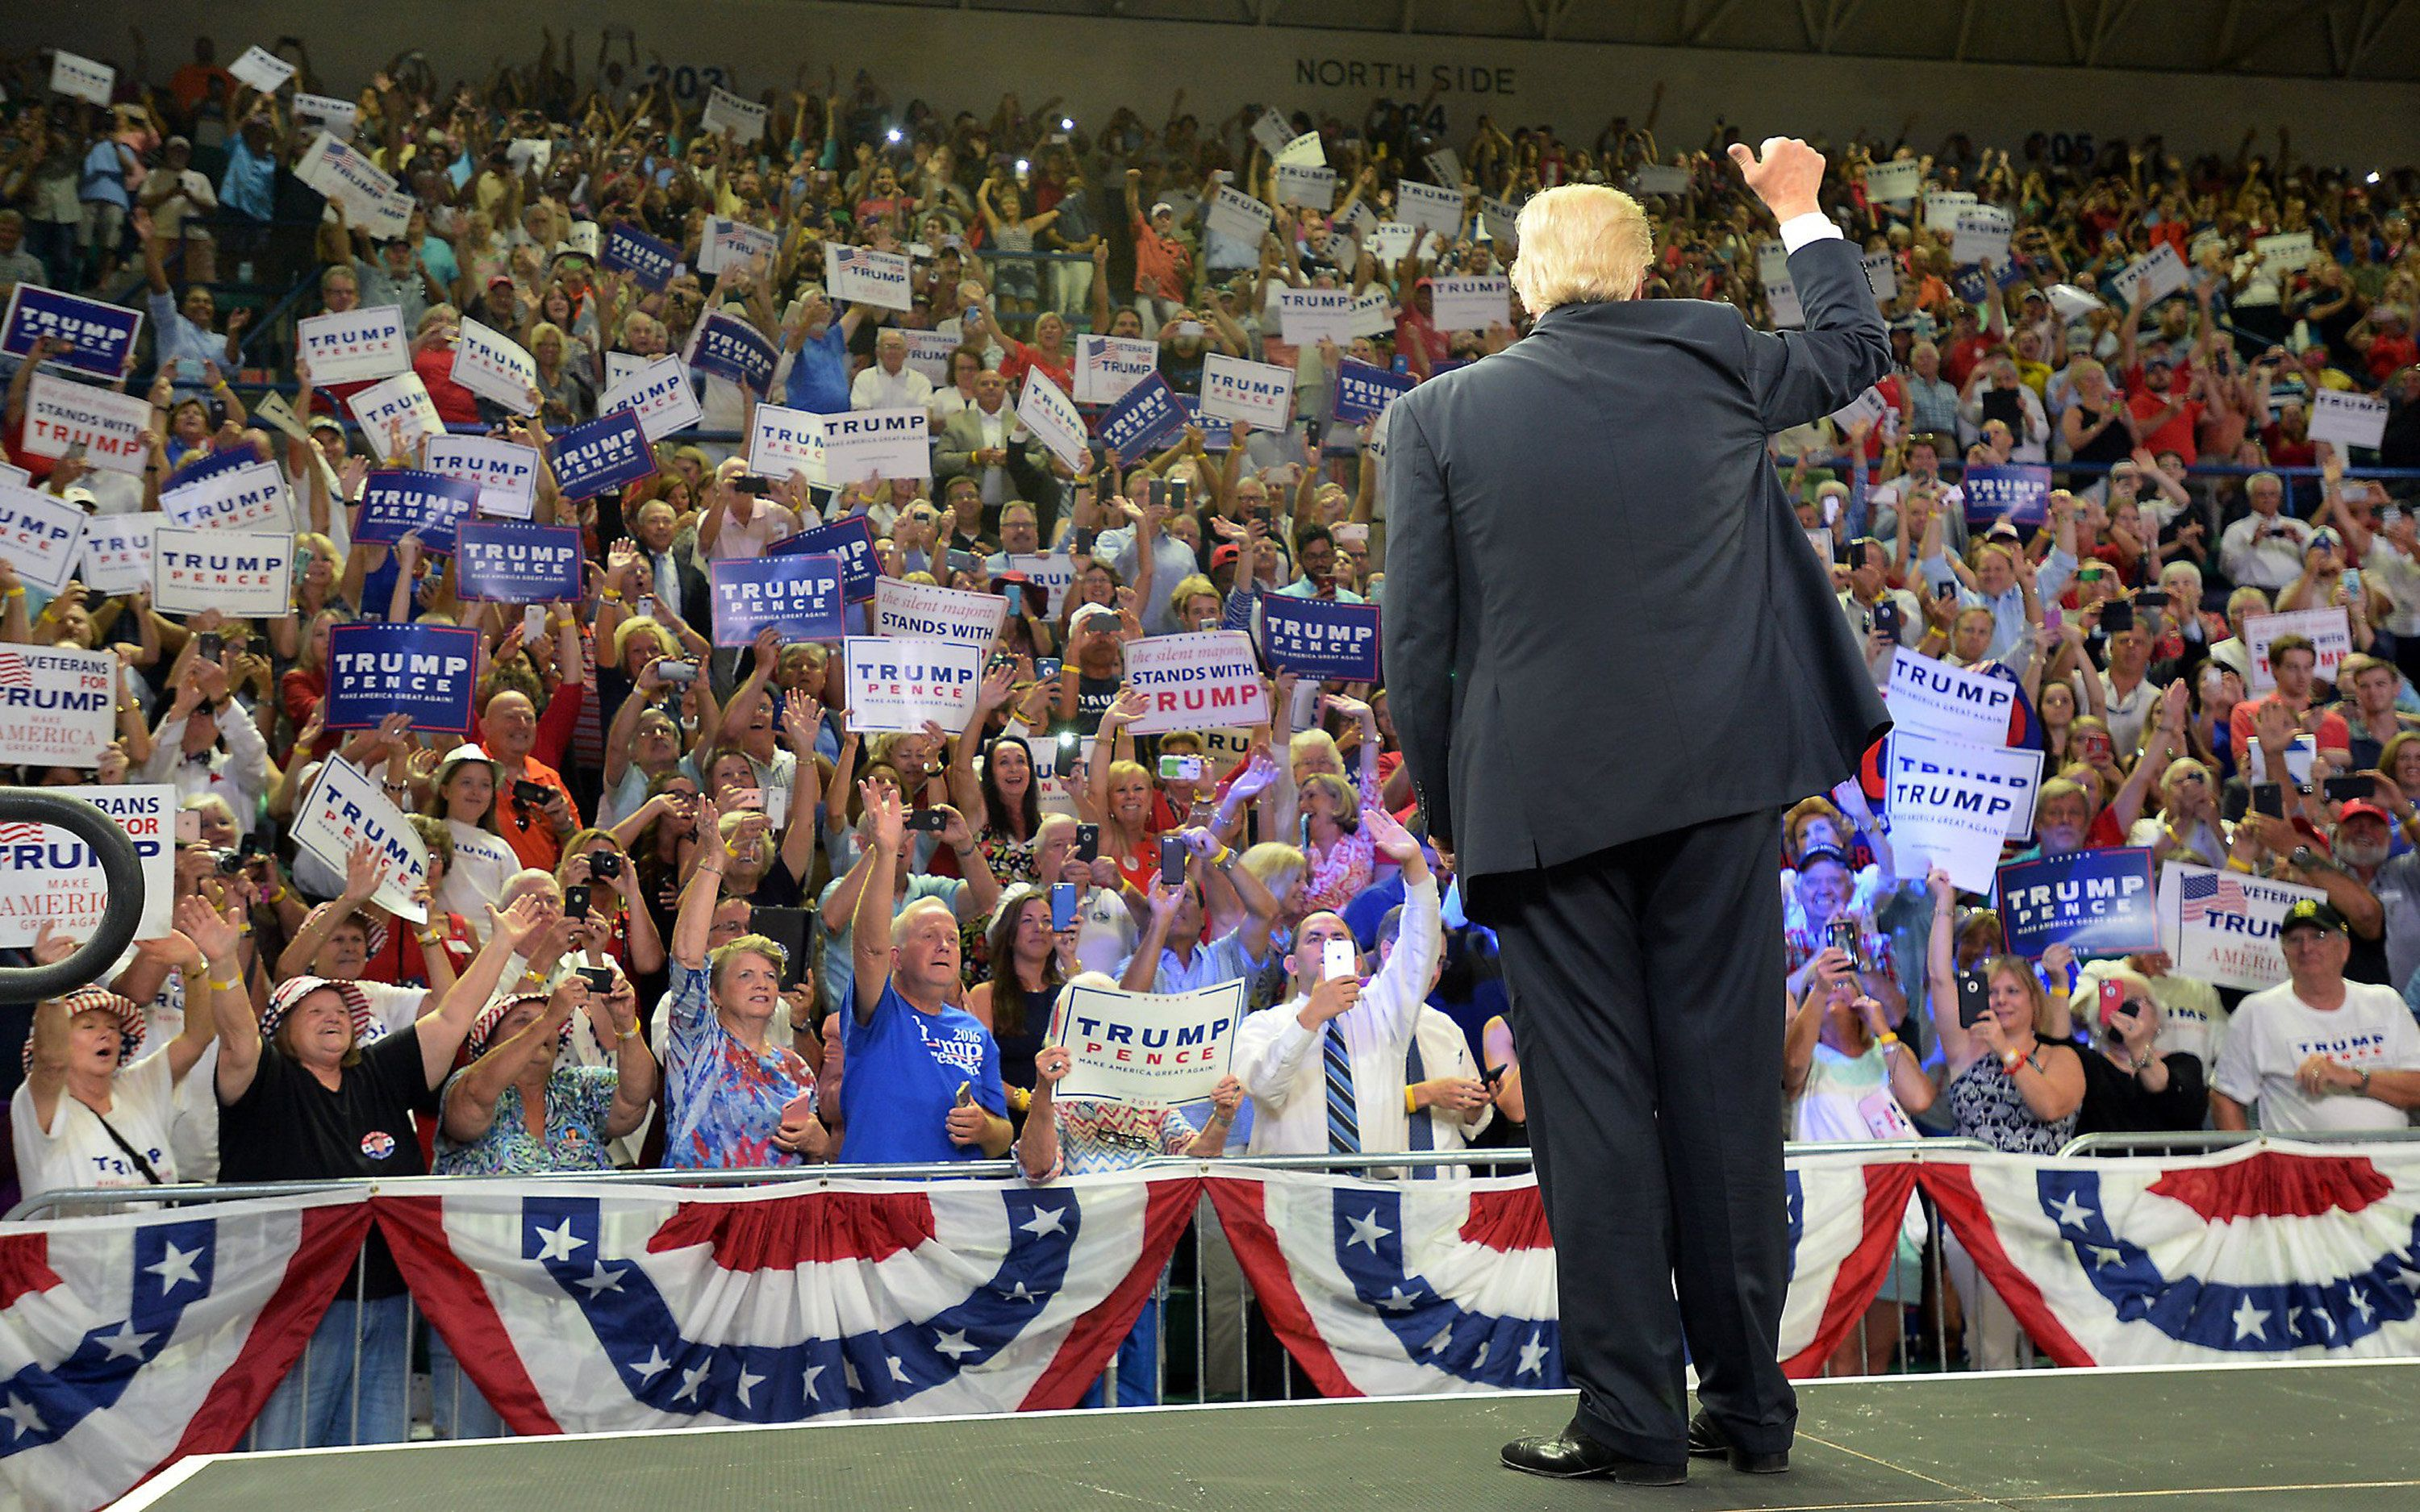 Republican presidential candidate Donald Trump gives a thumbs up to the crowd as he takes the stage Tuesday, Aug. 9, 2016 at the Trask Coliseum on the campus of University of North Carolina at Wilmington in Wilmington, N.C. (Chuck Liddy/Raleigh News & Observer/TNS via Getty Images)